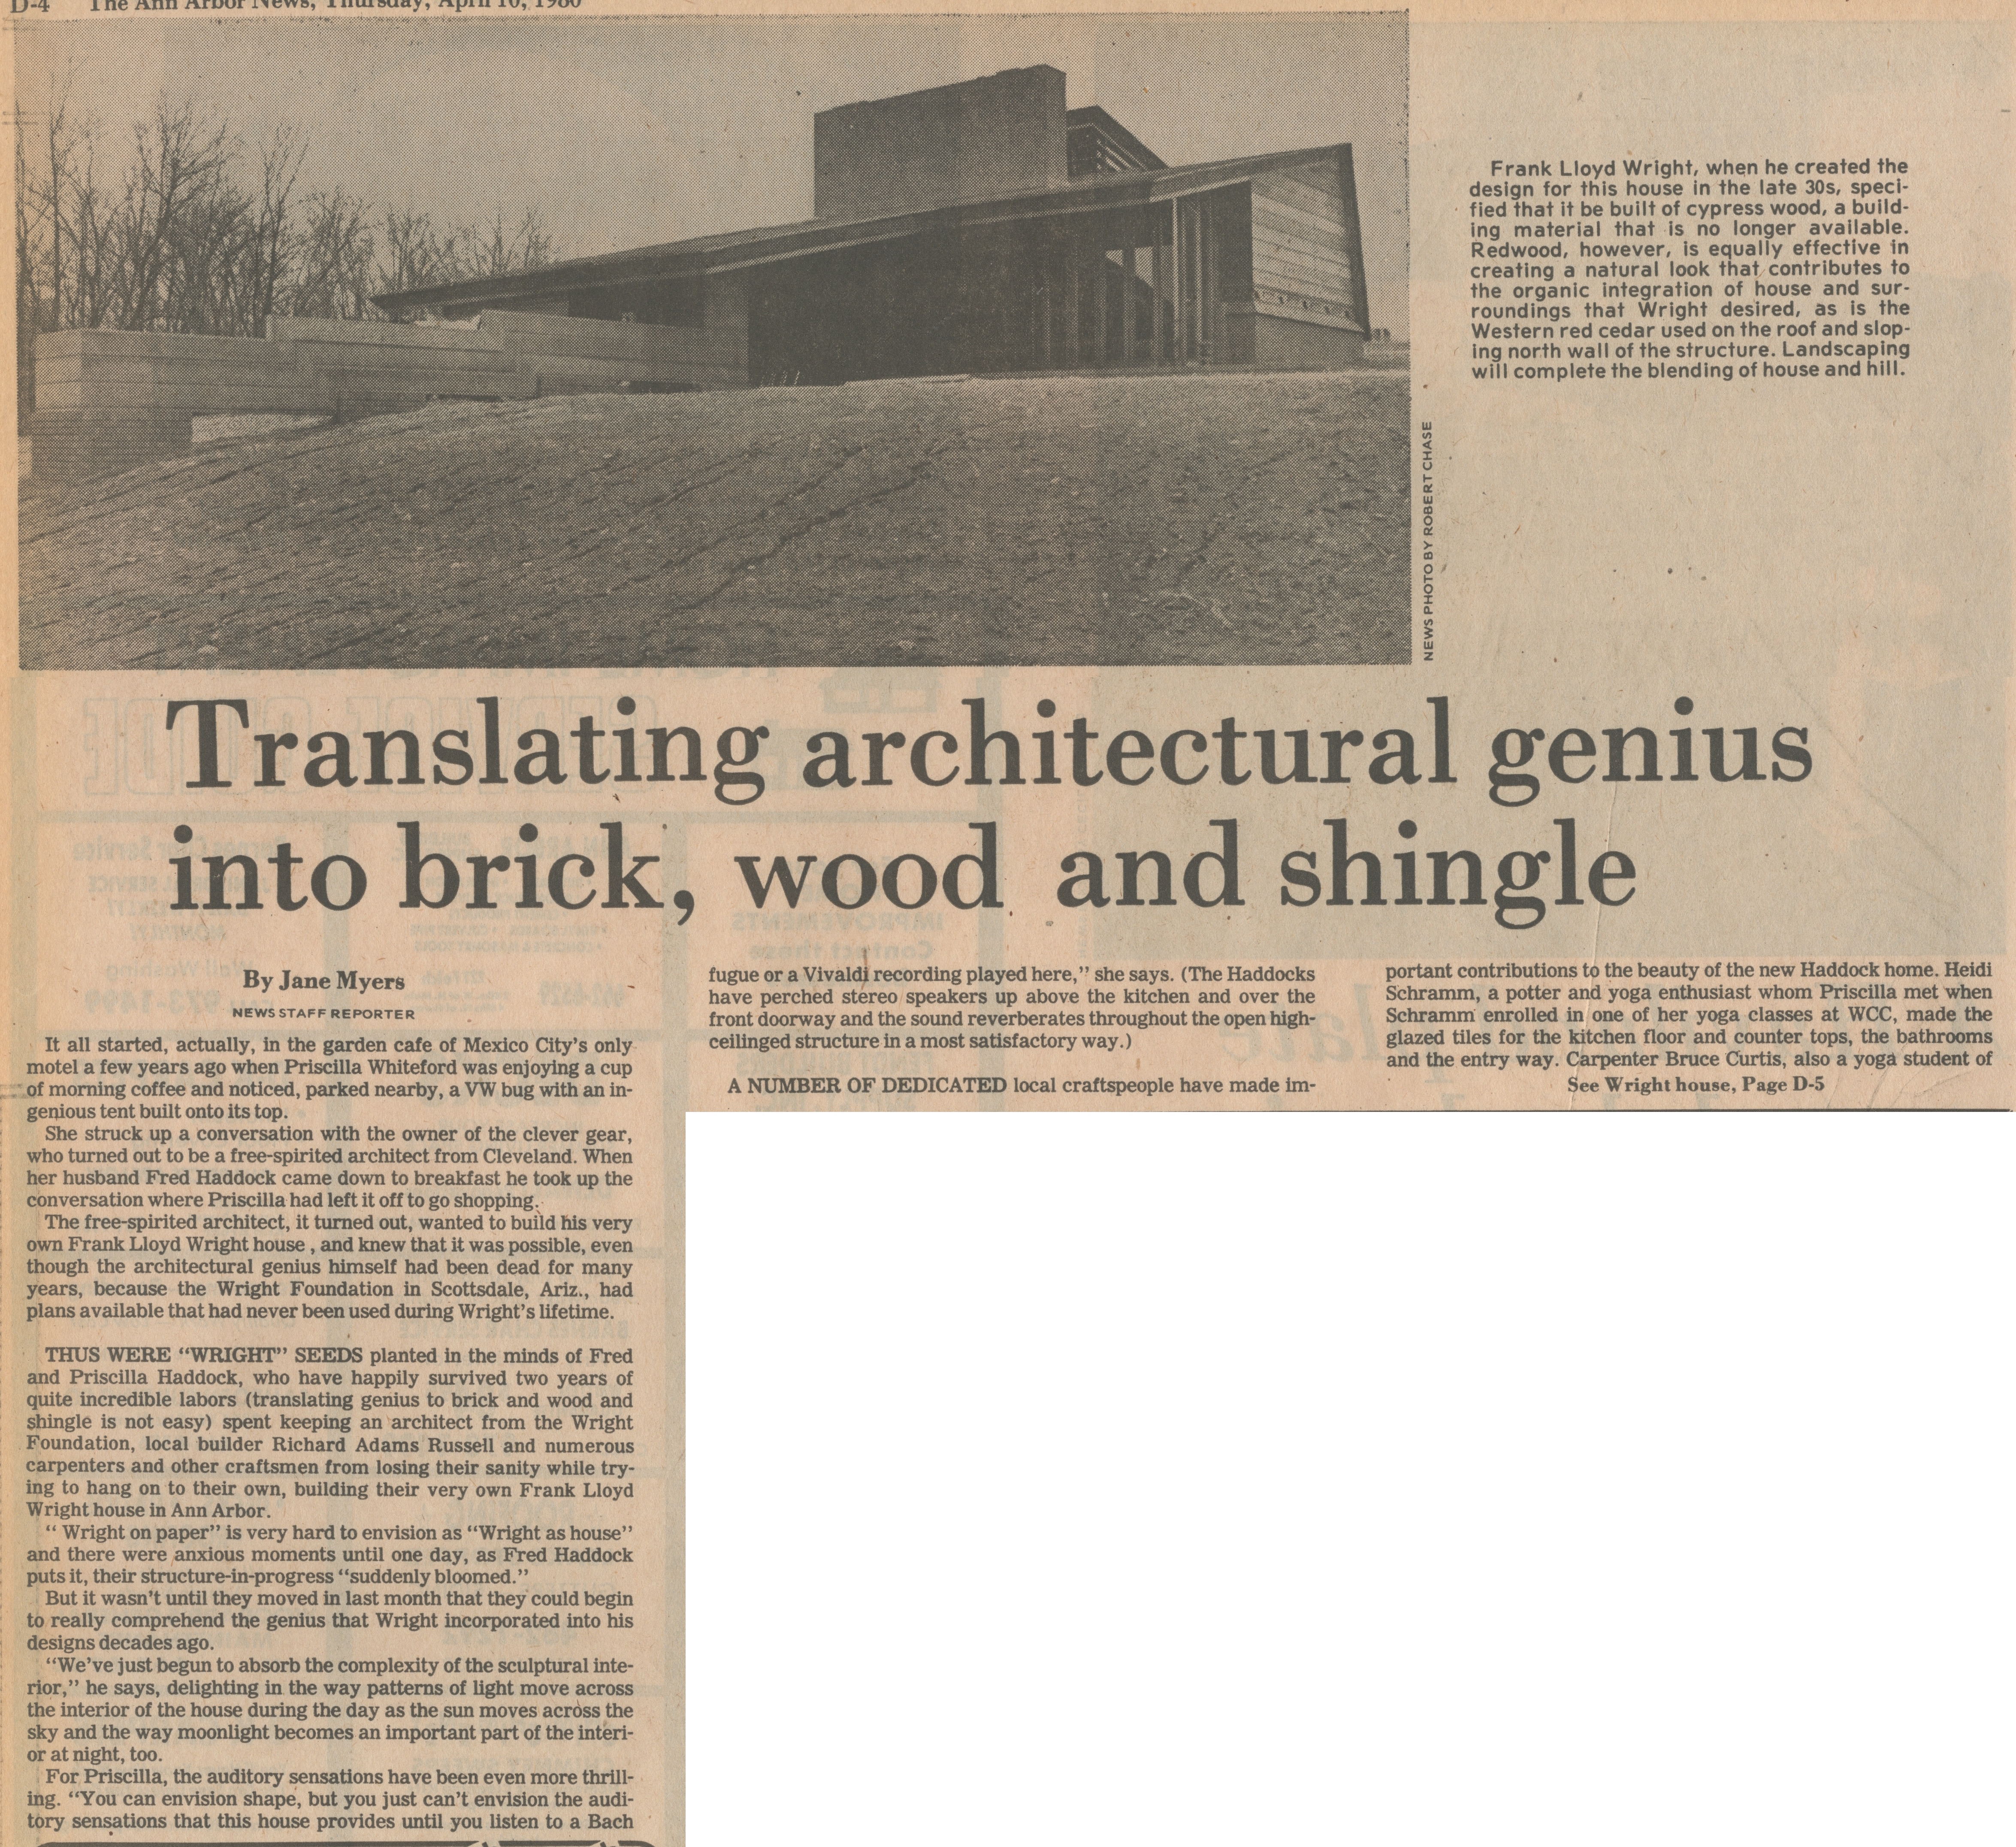 Translating Architectural Genius Into Brick, Wood And Shingle image